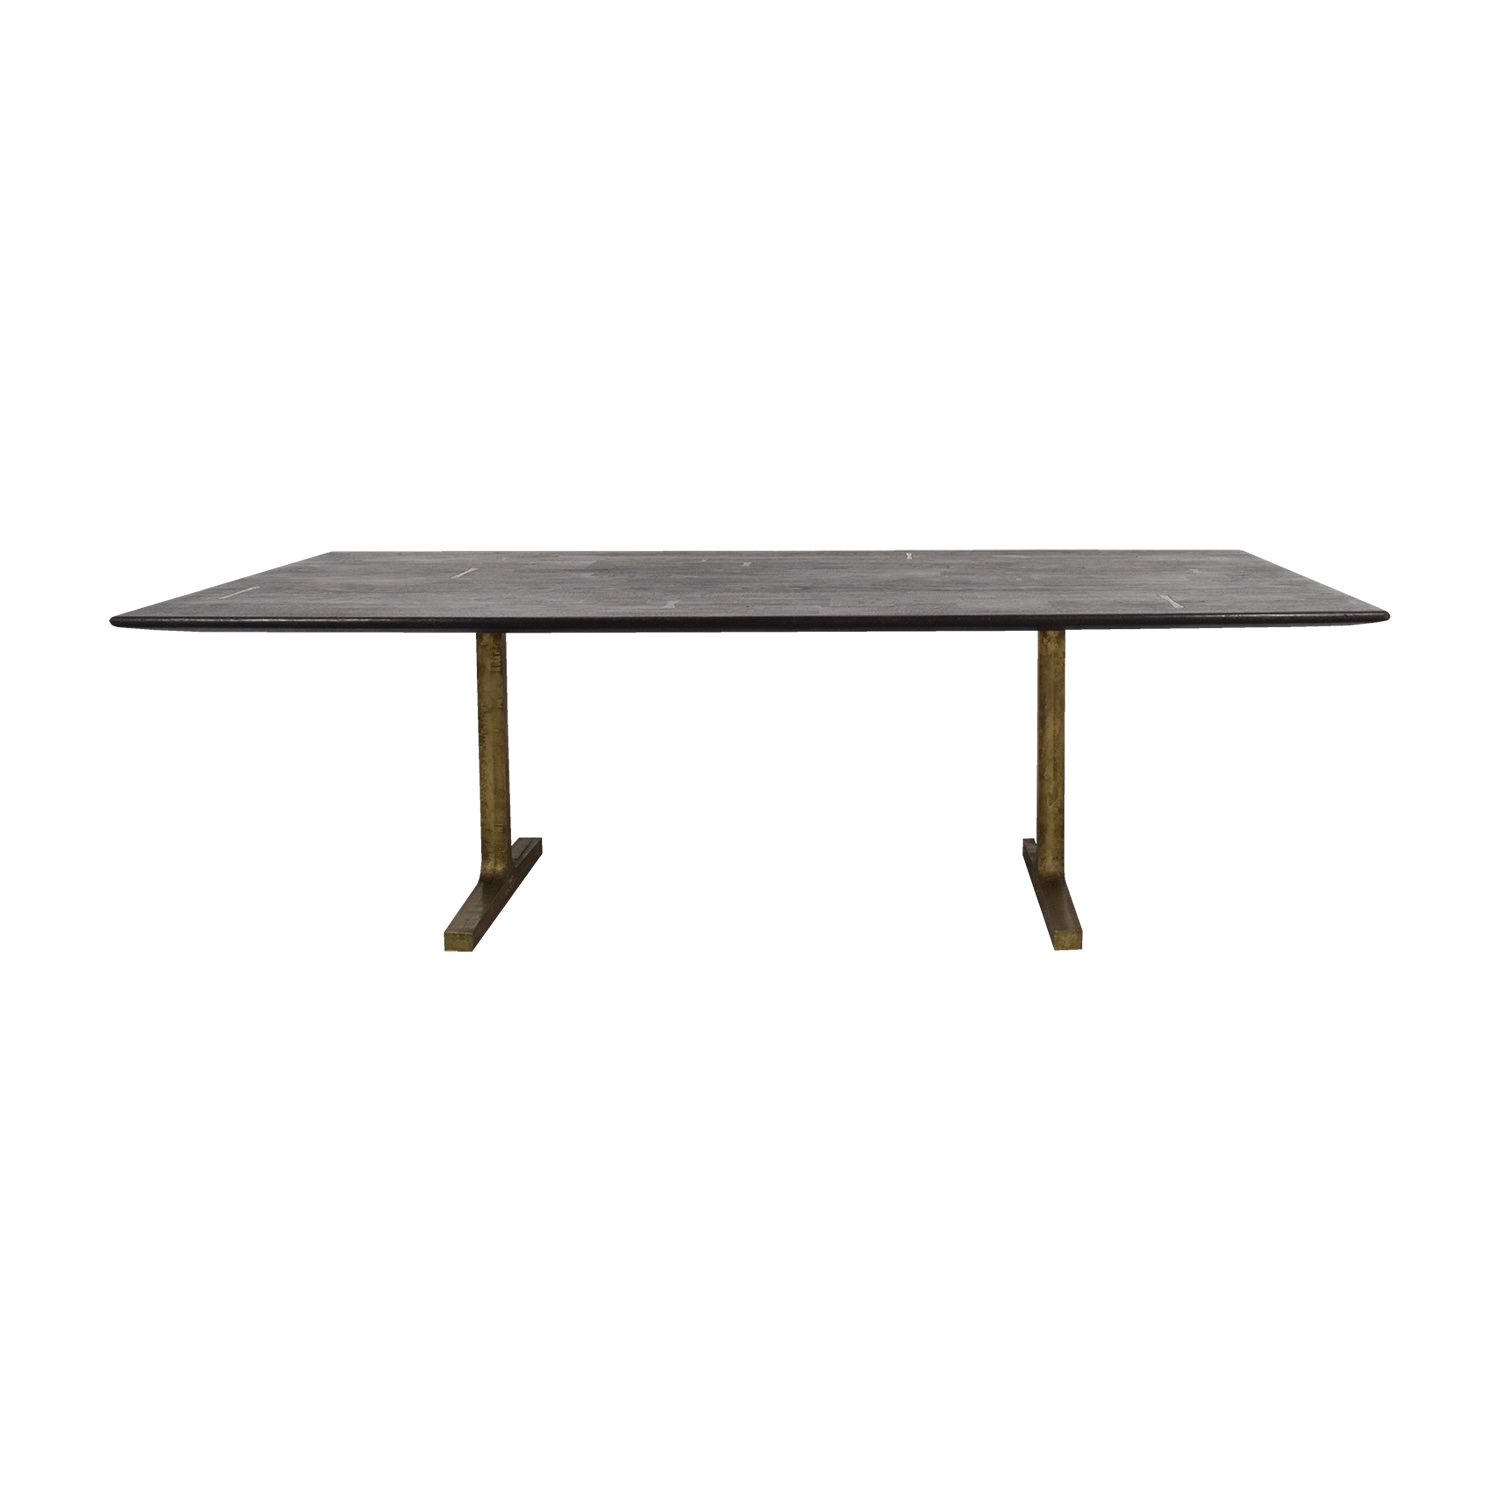 BDDW BDDW Bronze Trestle Table for sale